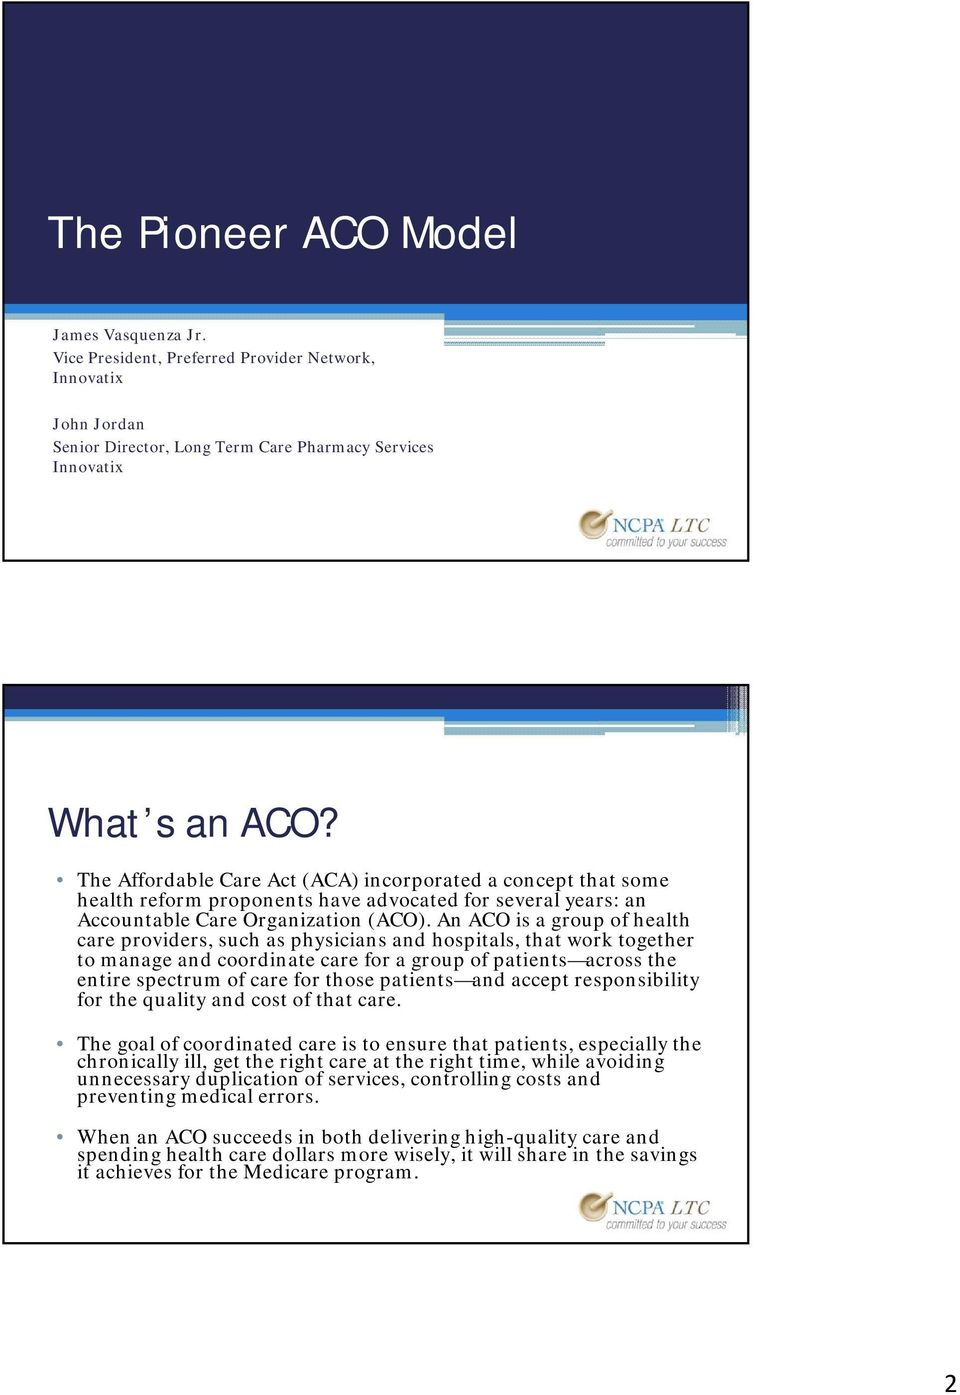 An ACO is a group of health care providers, such as physicians and hospitals, that work together to manage and coordinate care for a group of patients across the entire spectrum of care for those